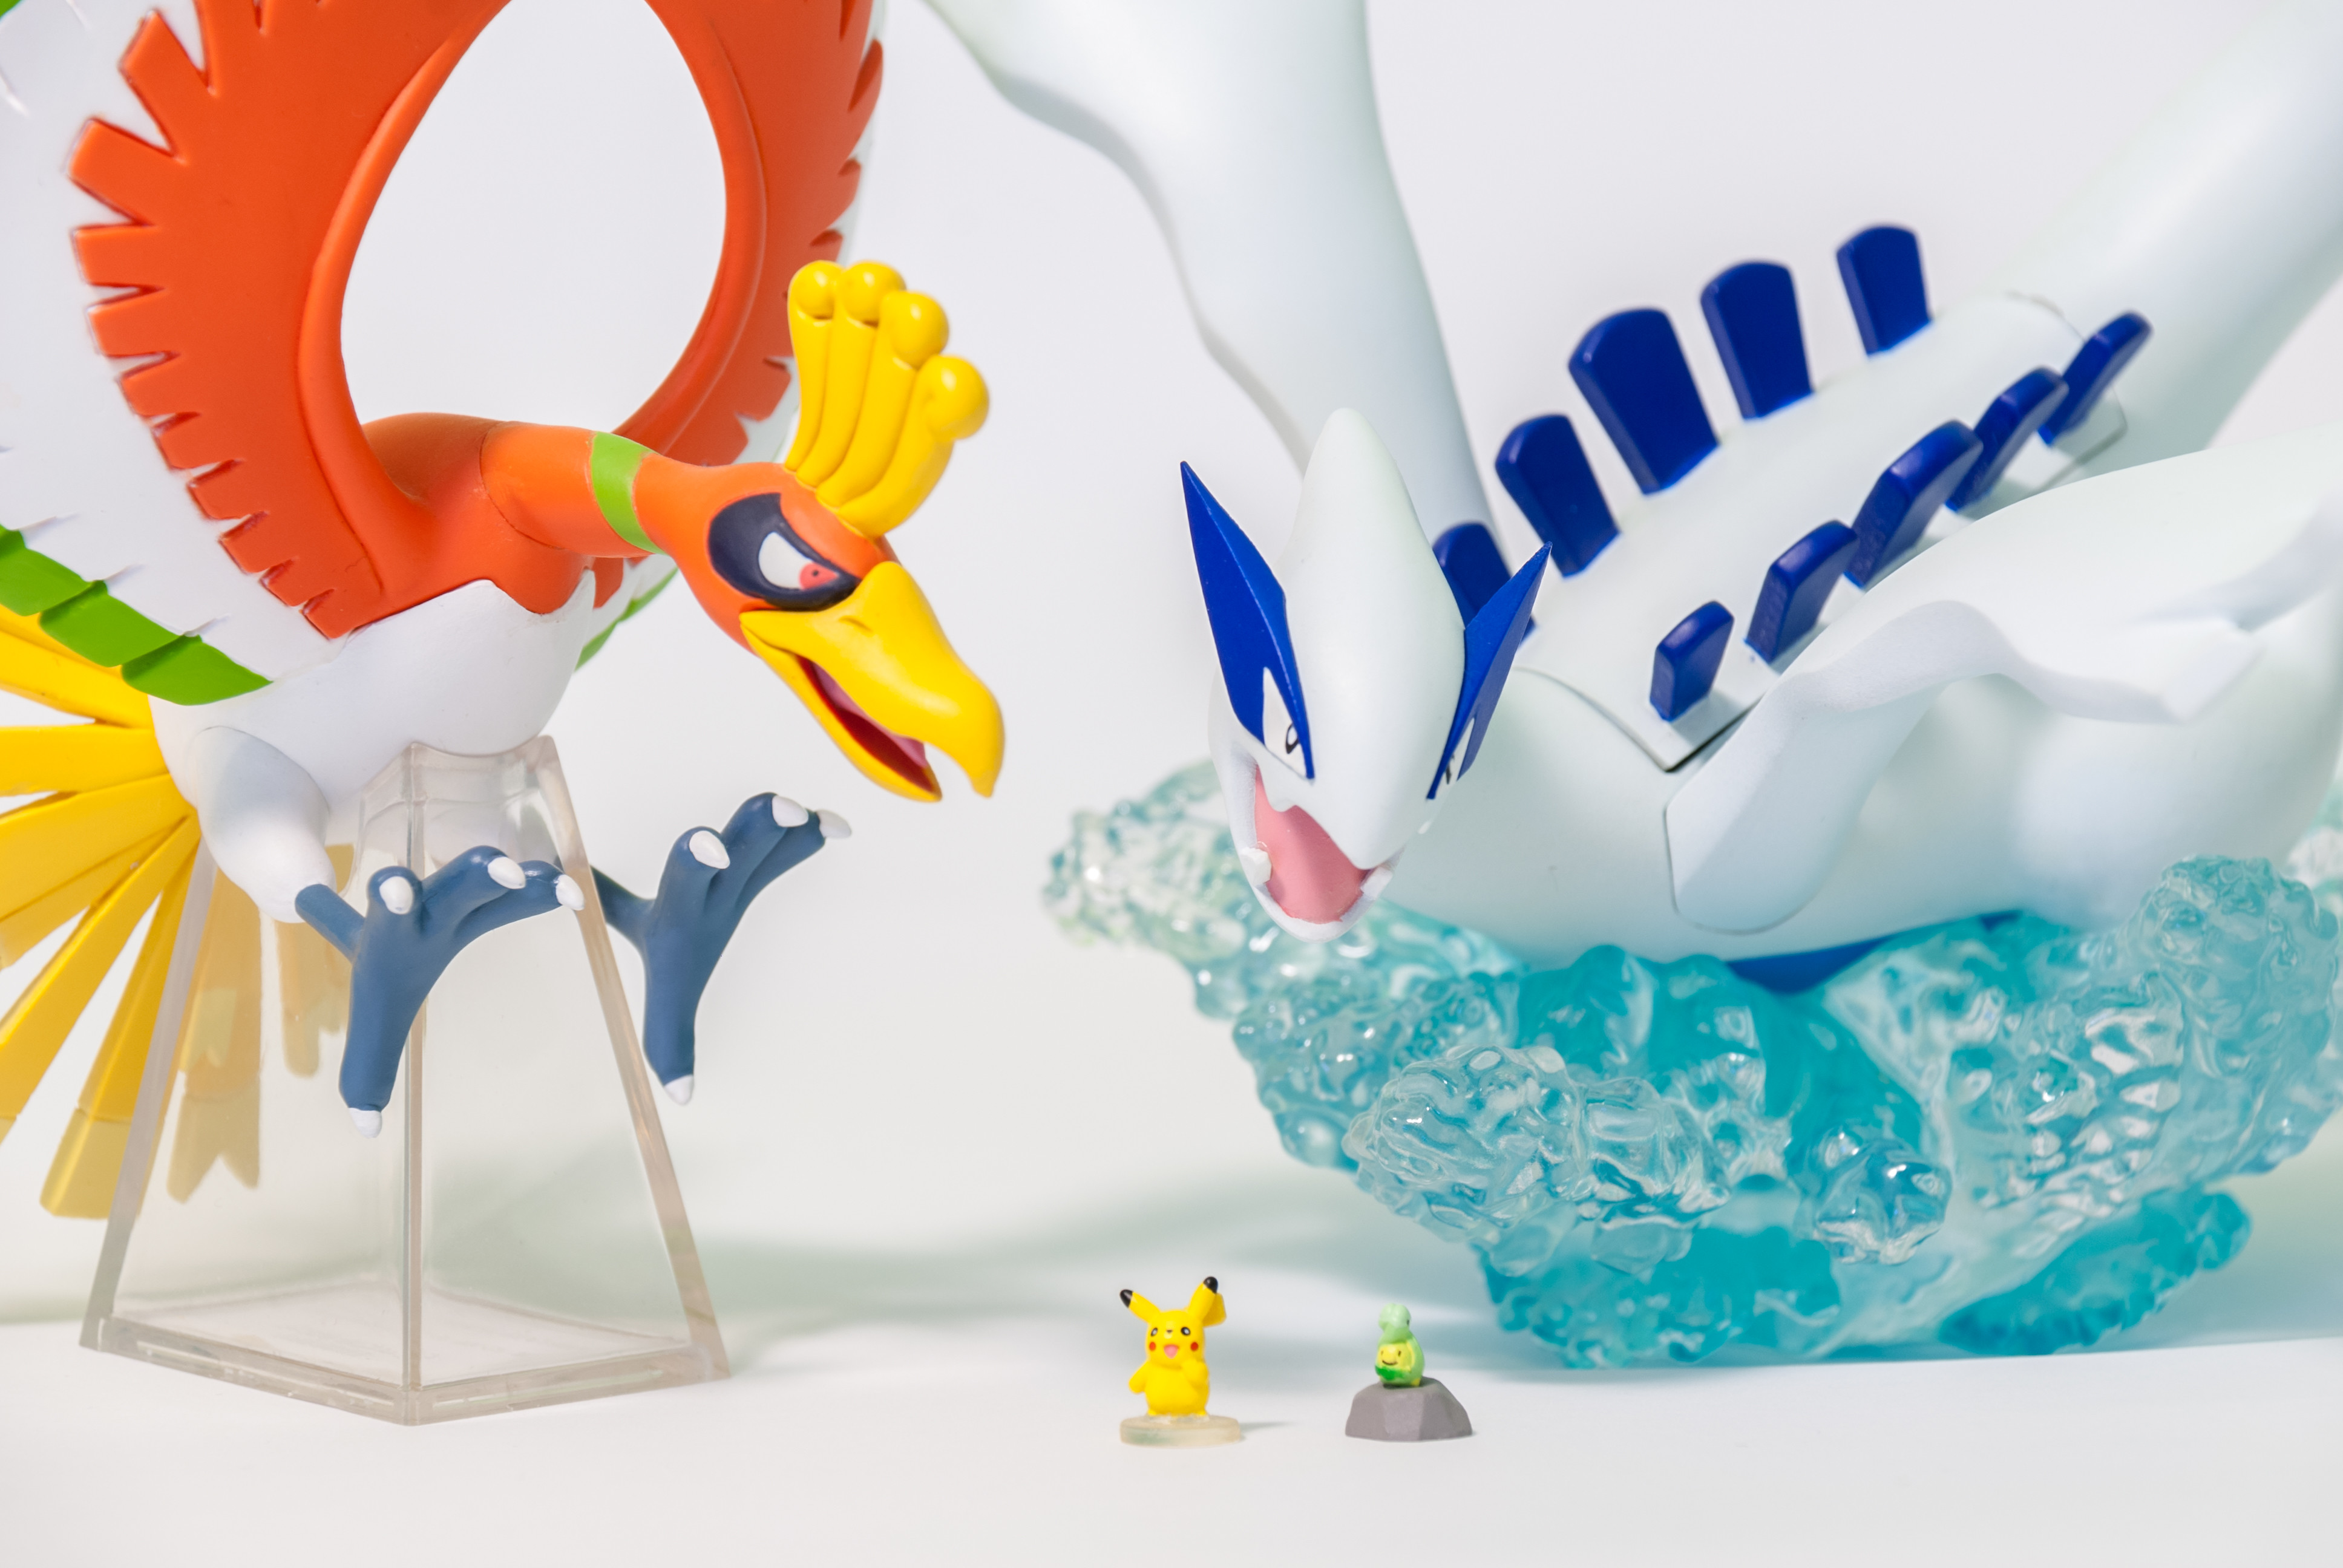 Lottery Ho-oh and DP 03 Budew and DP 12 Pikachu and DS Studio 16 Lugia